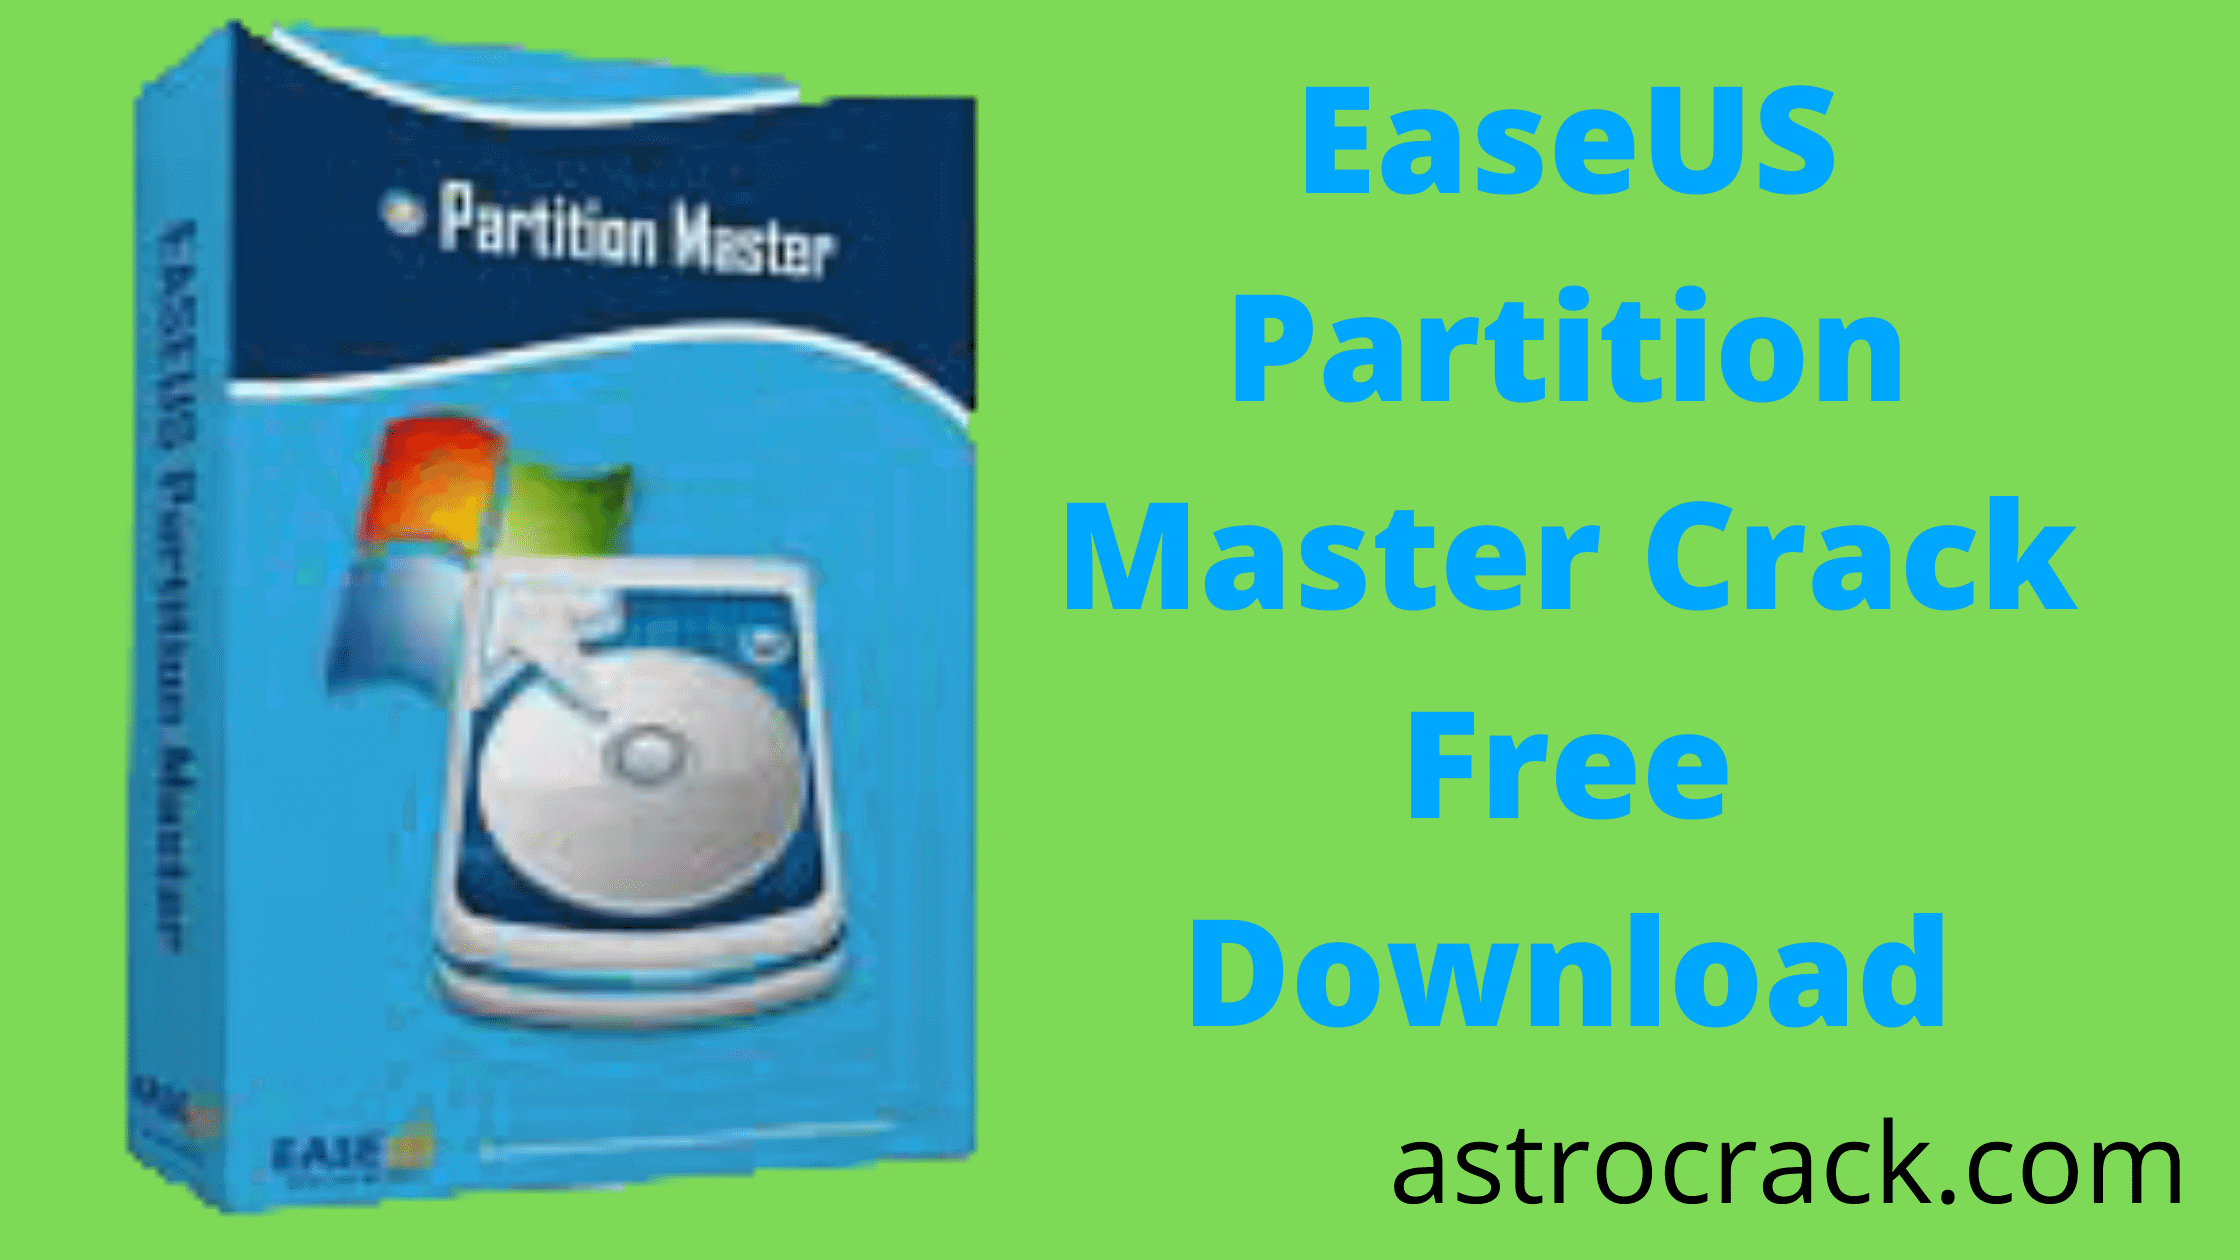 EaseUS Partition, EaseUS Partition crack, EaseUS Partition crack download, EaseUS Partition Crack patched, LanSweeper download